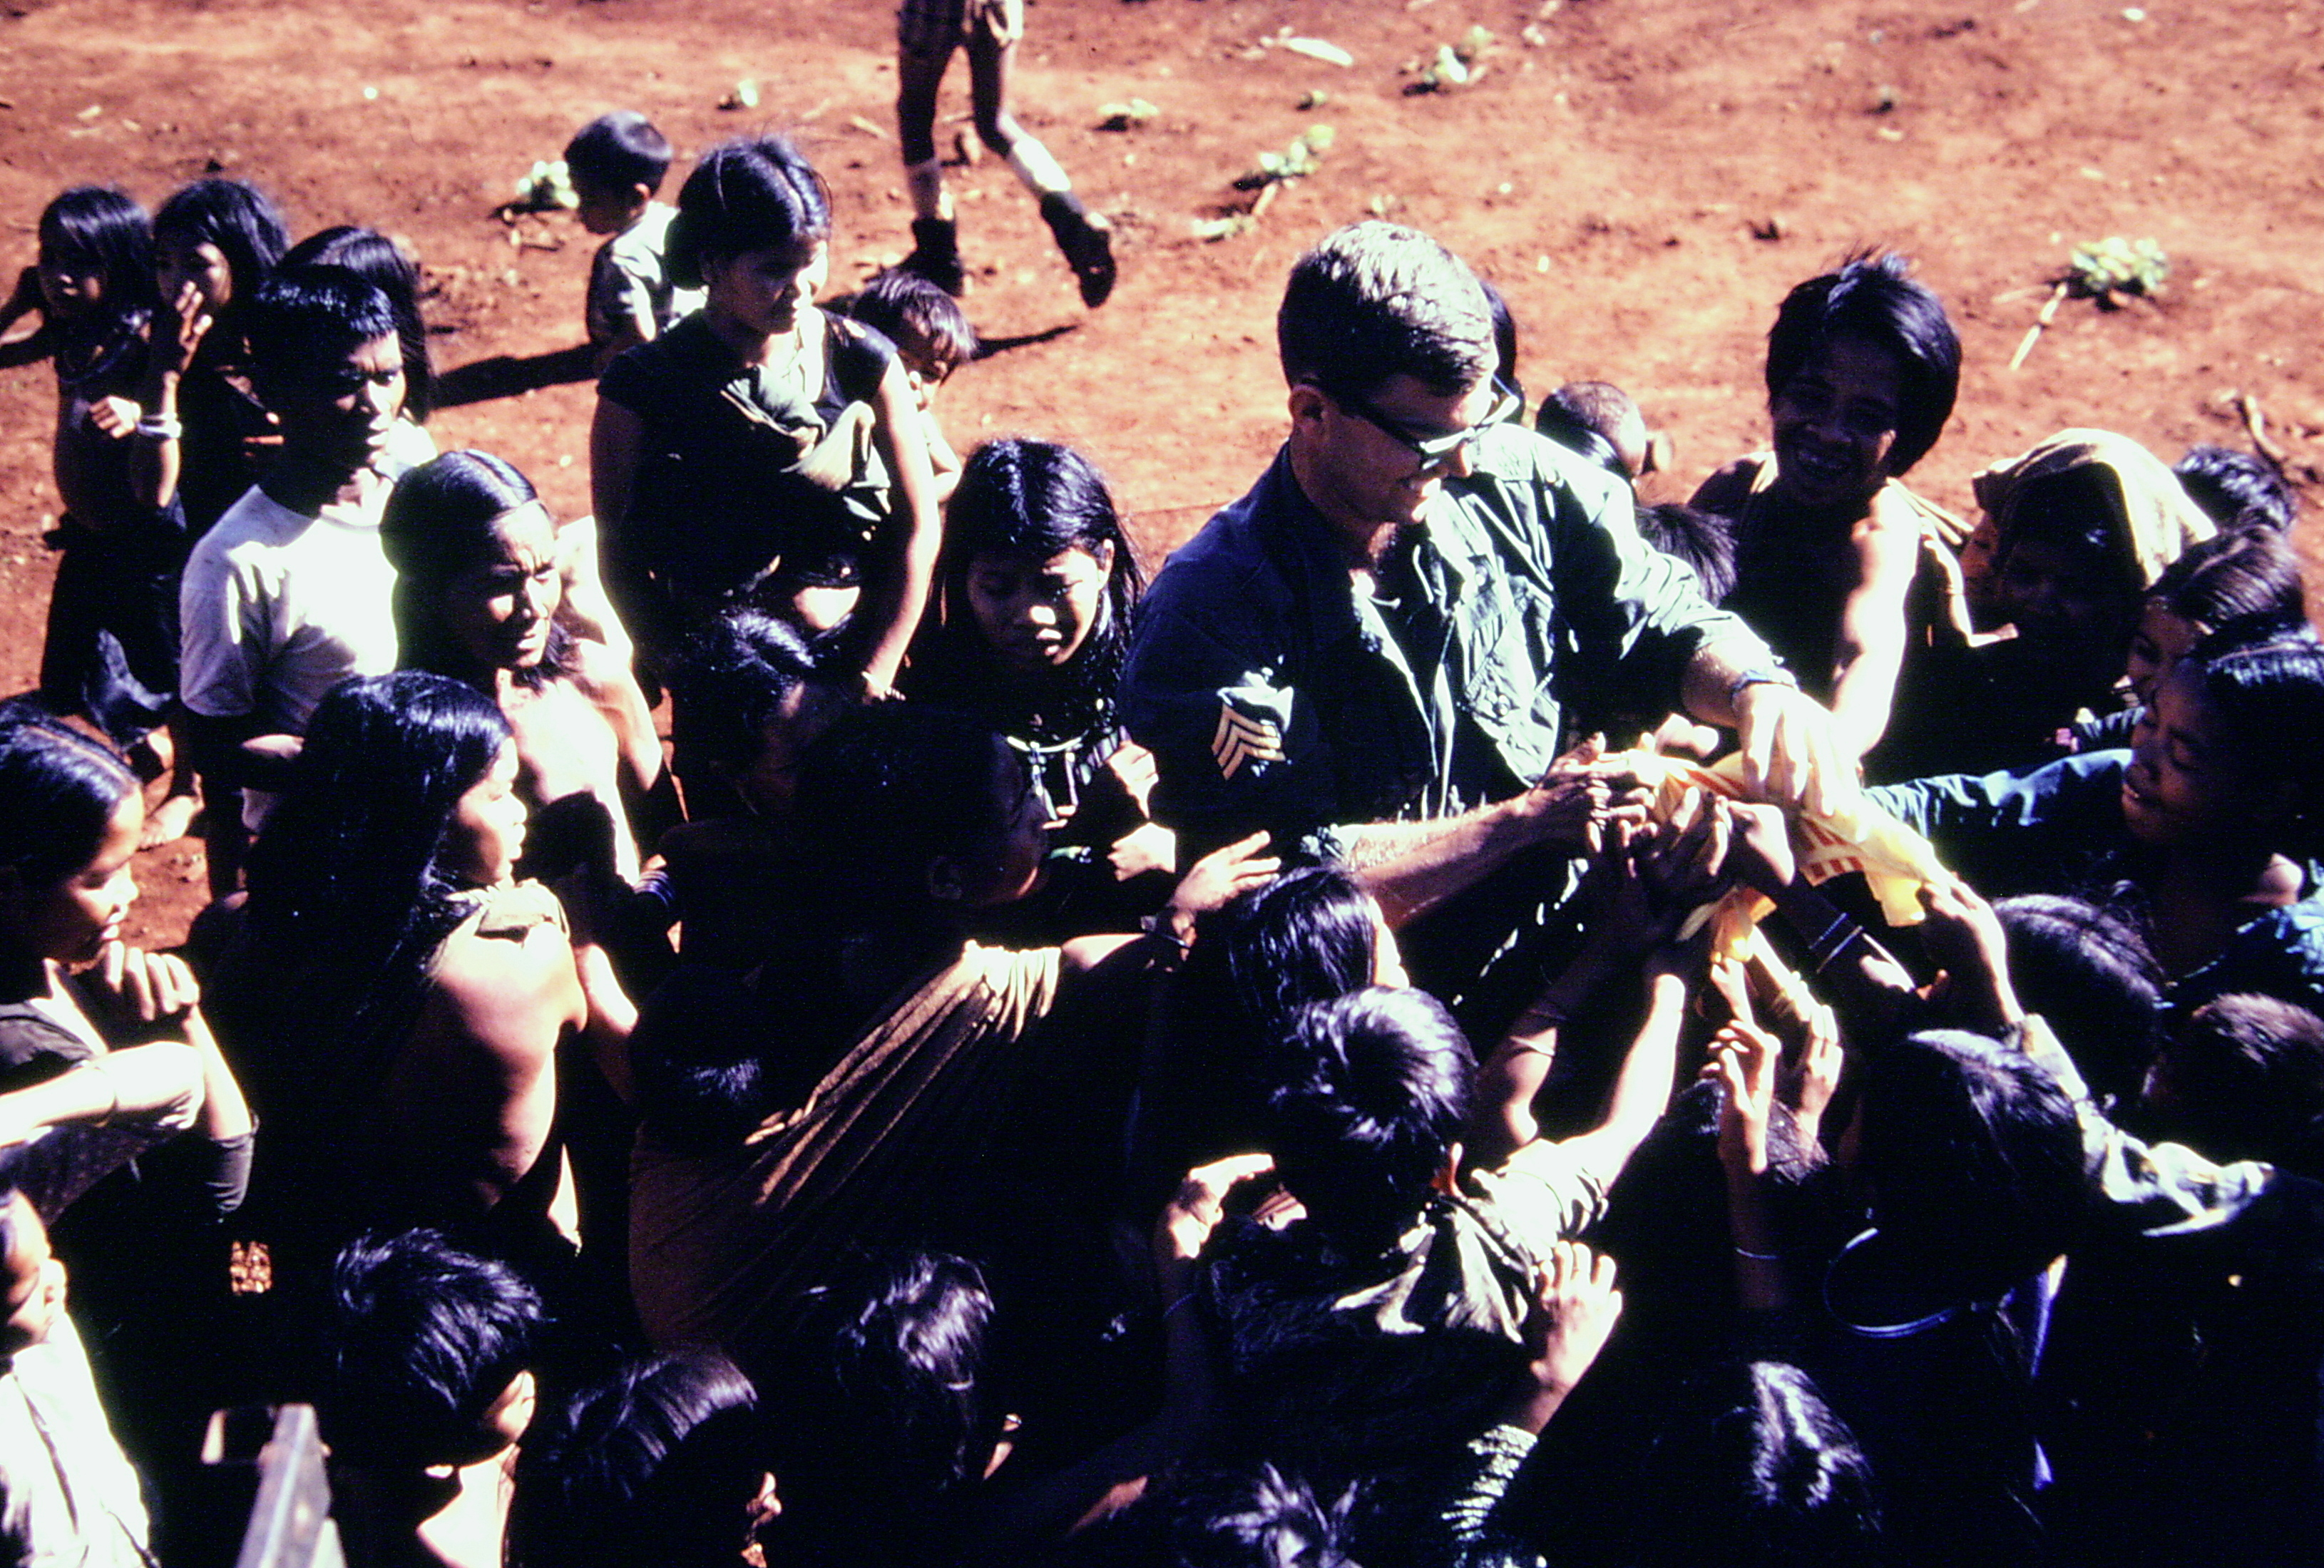 Young soldier surrounded by young Montagnard children in a military camp.